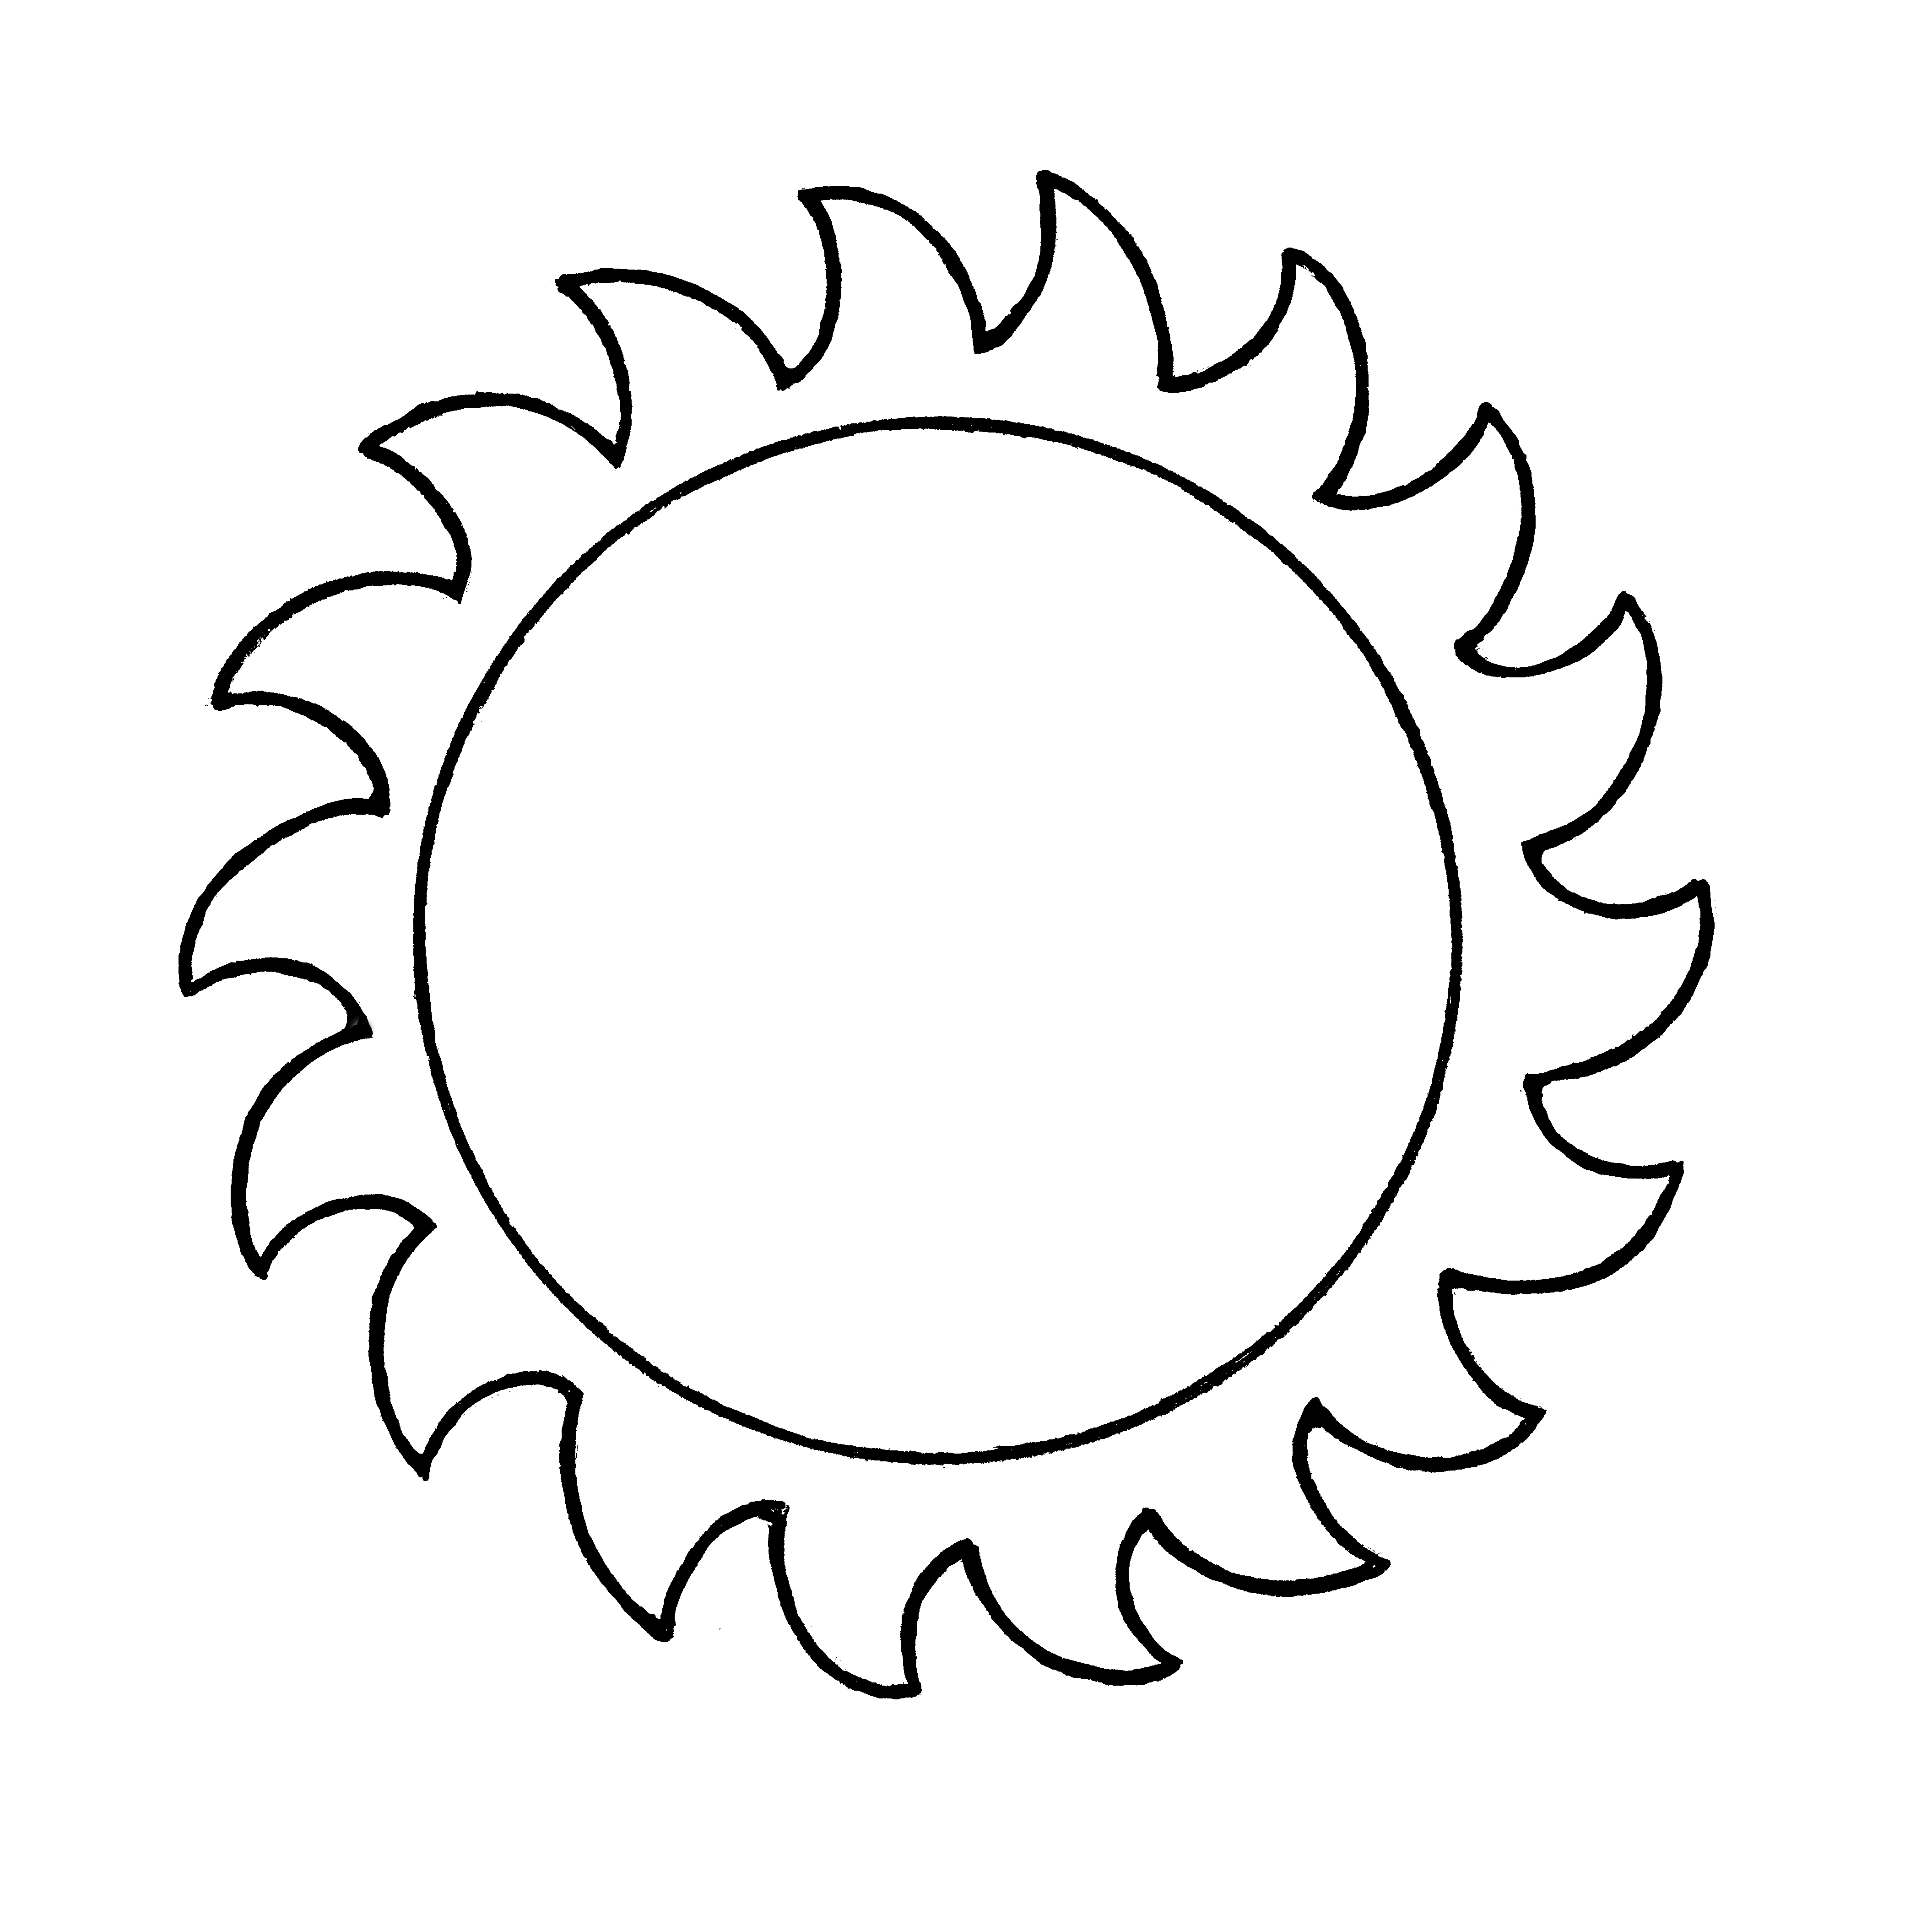 A line drawing of the sun from the nursery manual Behold Your Little Ones (2008), page 35.